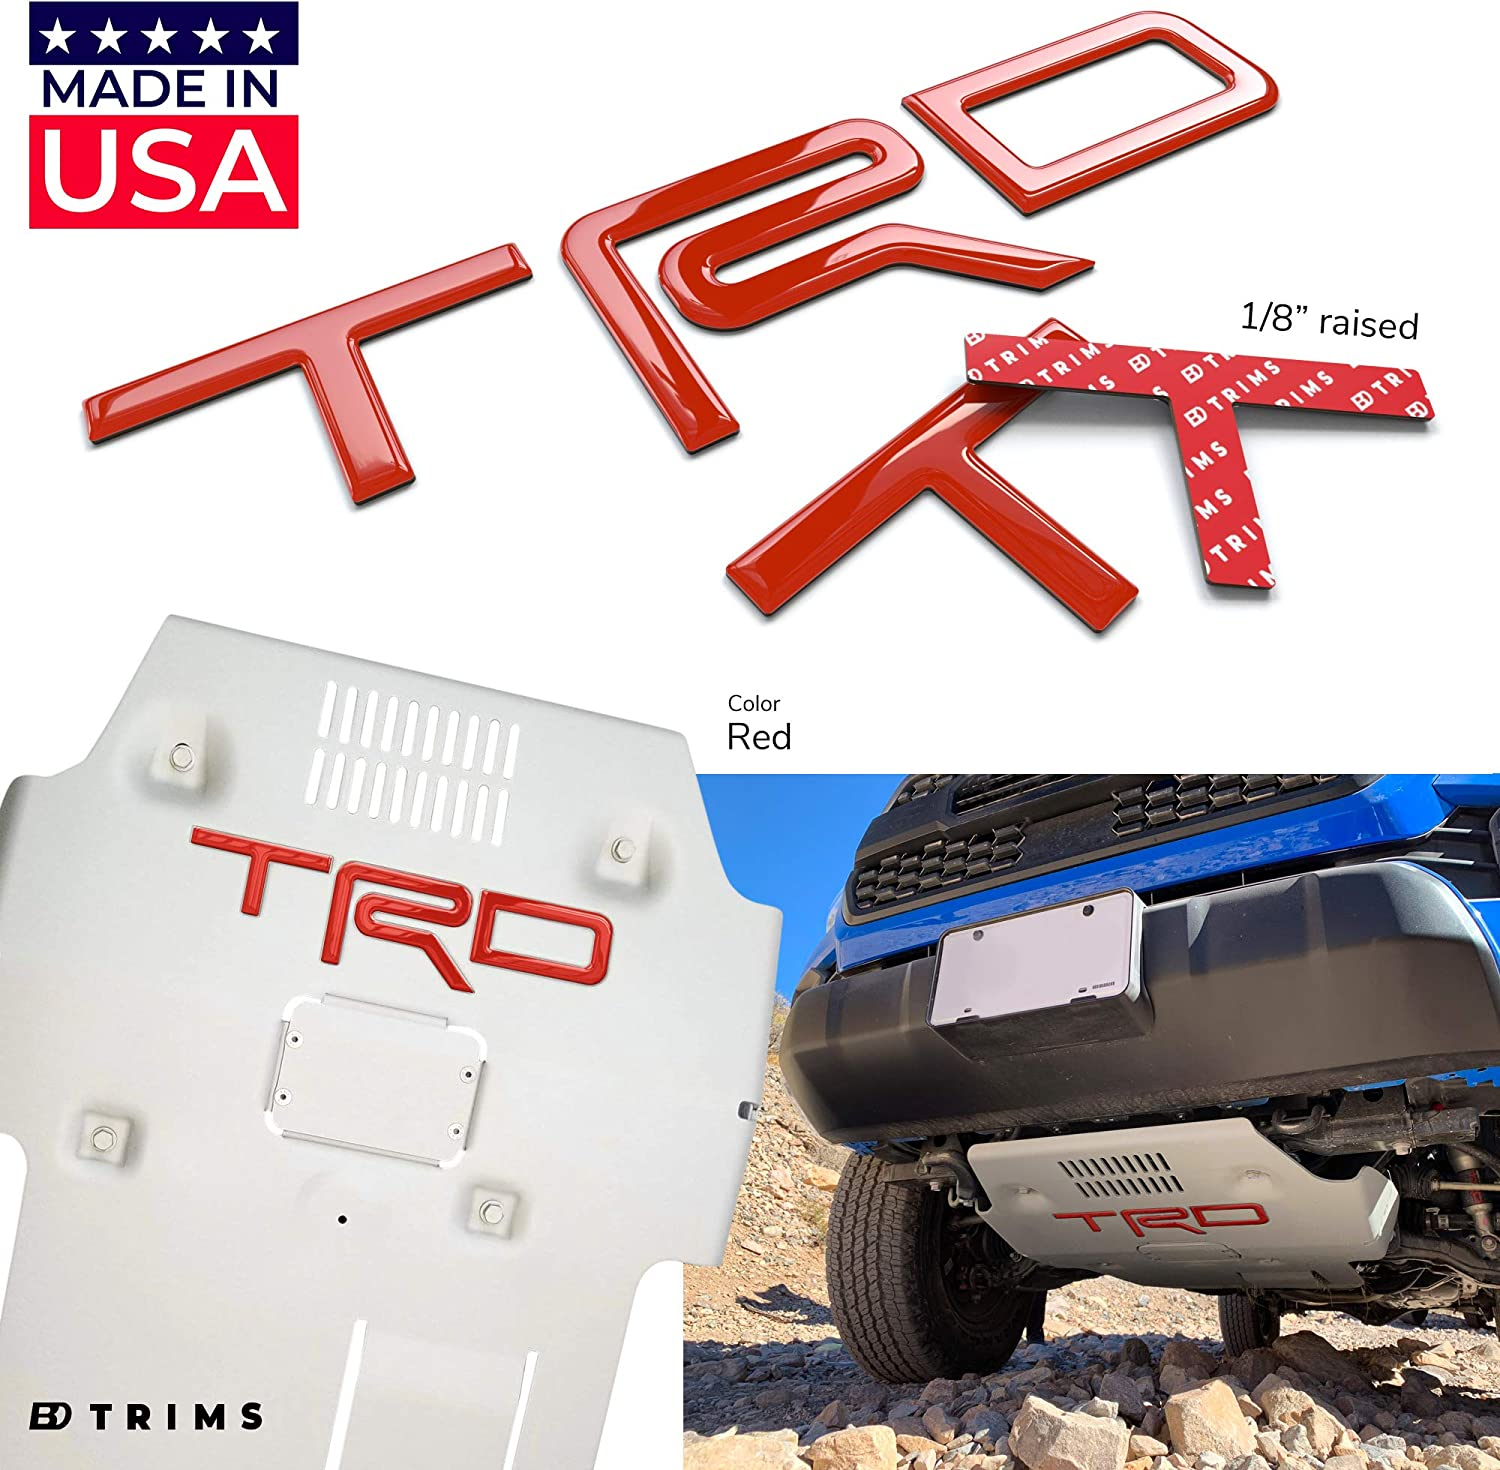 BDTrims Domed 3D Raised Letters Compatible with TRD Skid Plate 2016-2020 Tacoma and 2019-2020 4Runner Models Orange